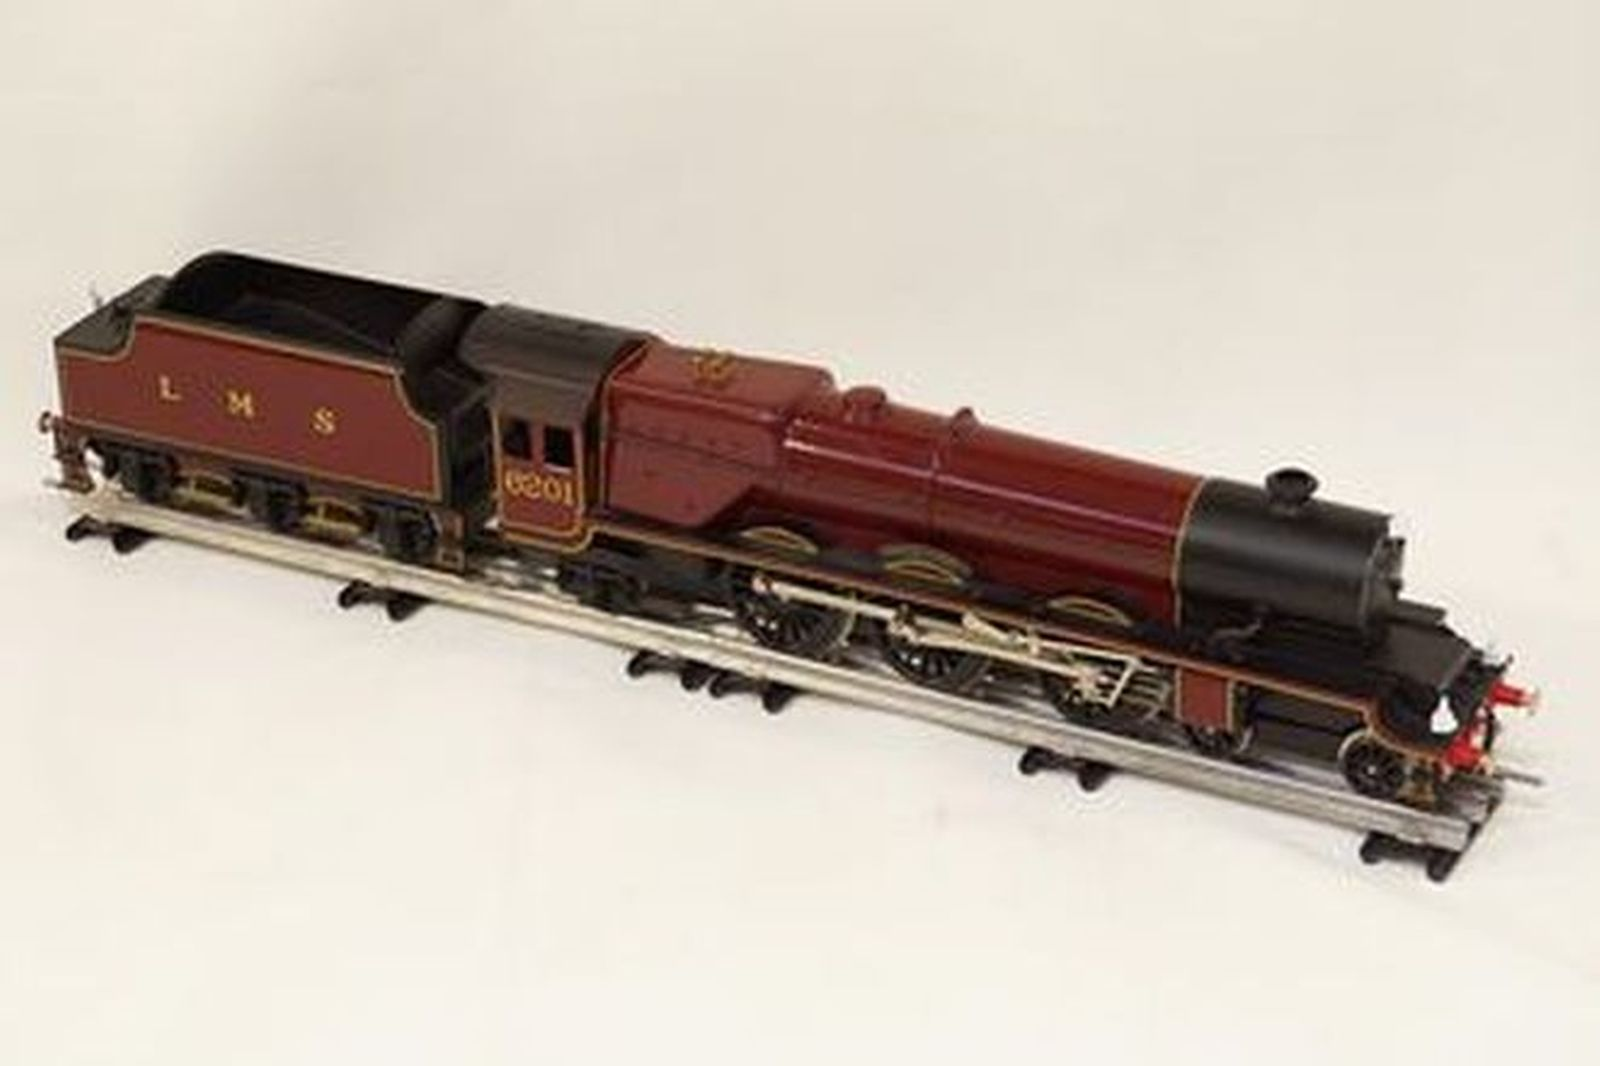 Train & Track - Bassett Lowke O Gauge 'Princess Elizabeth' 6201 with LMS Tender & Track